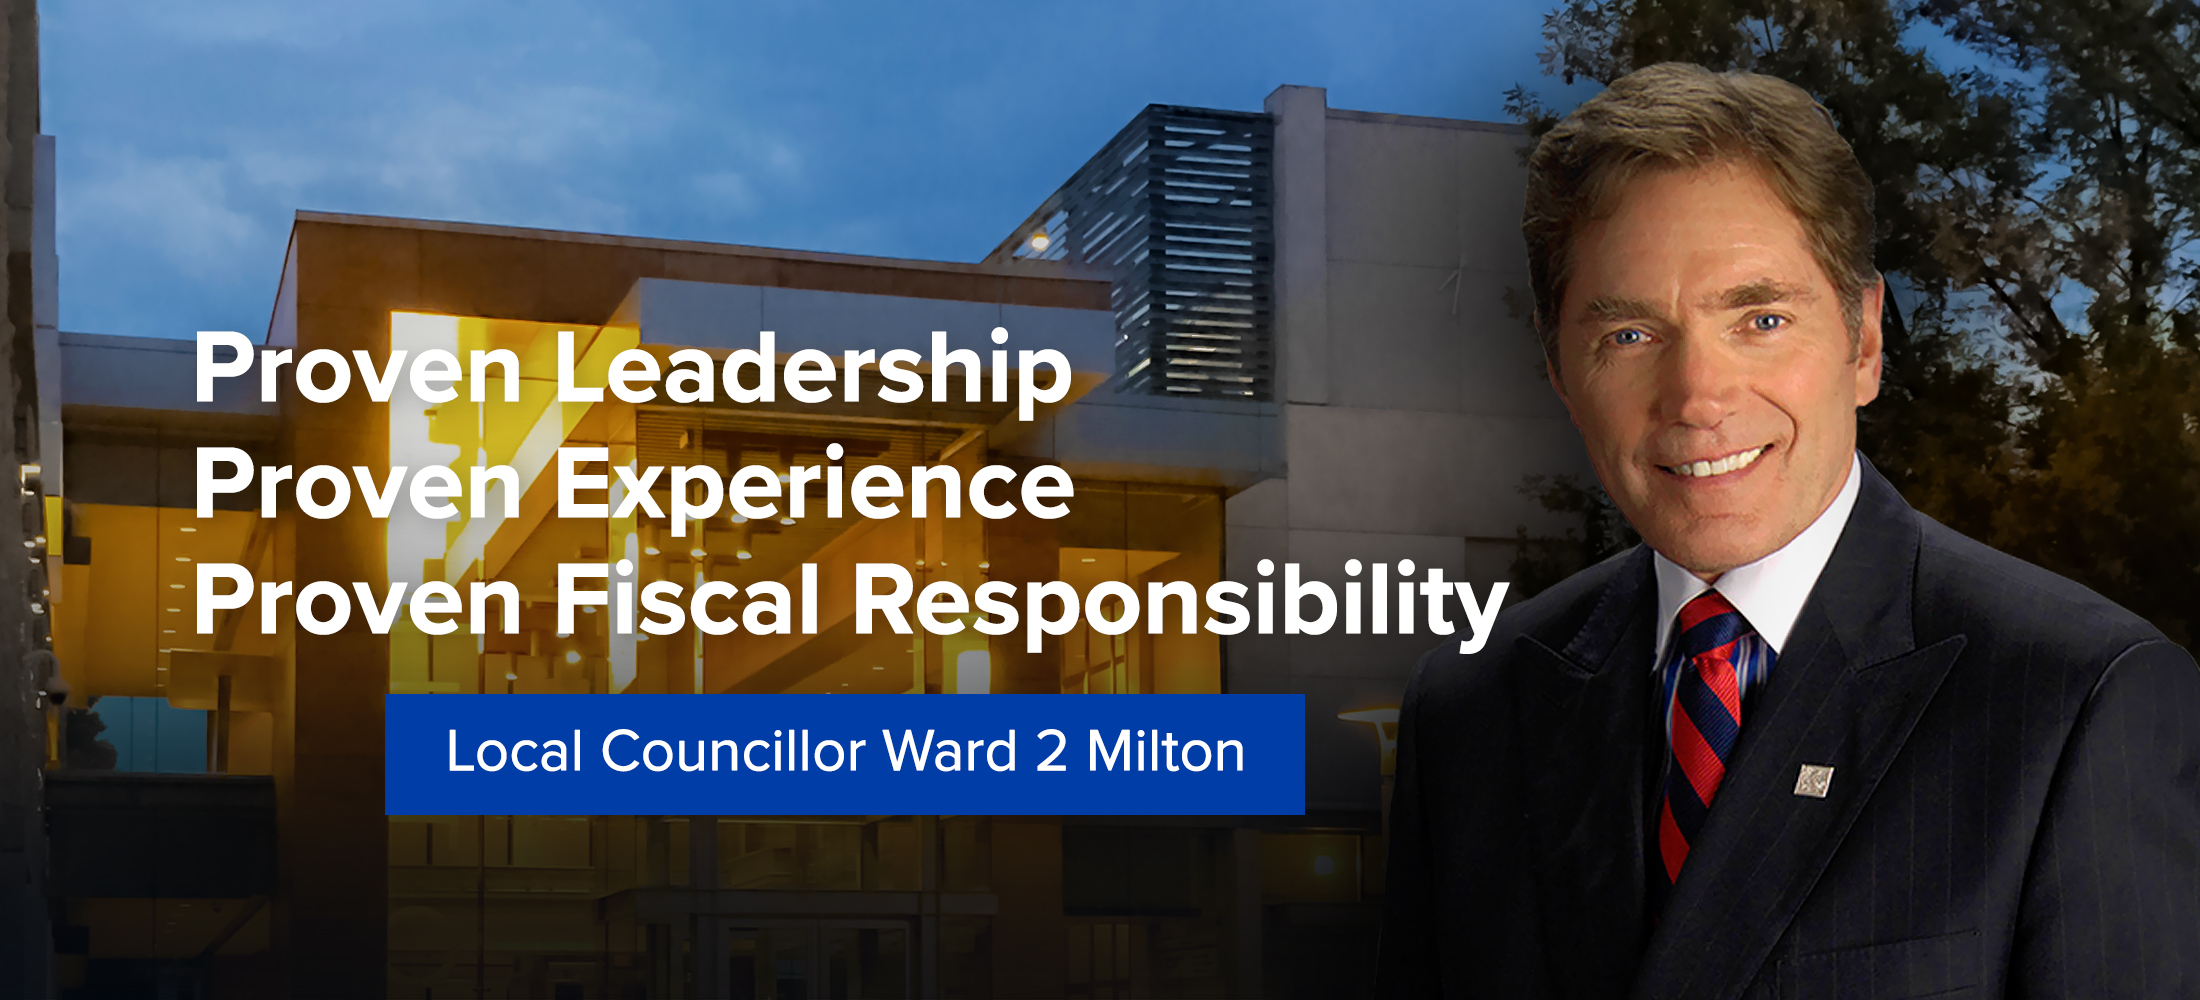 John Challinor Leadership Experience Fiscal Responsibility